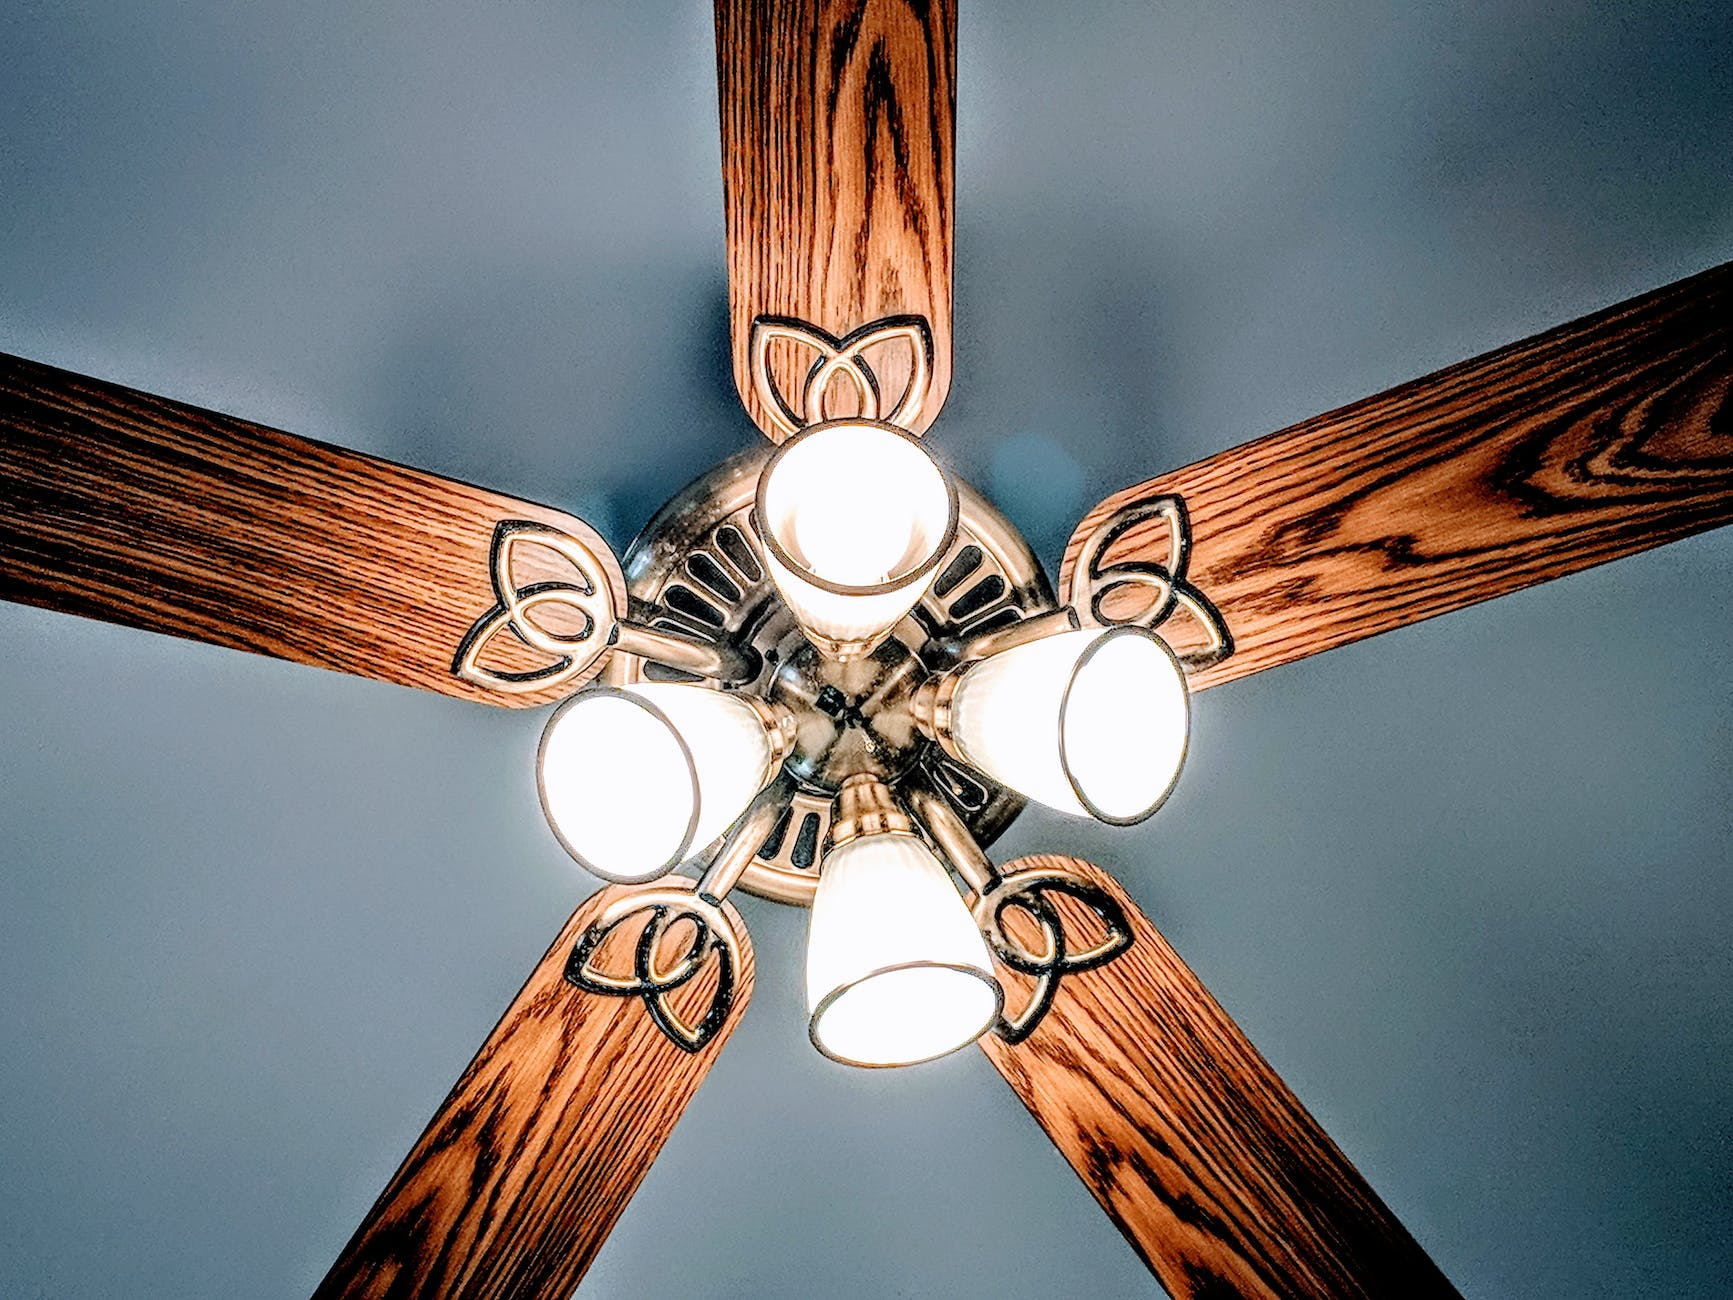 Ceiling fan and 4 bulbs